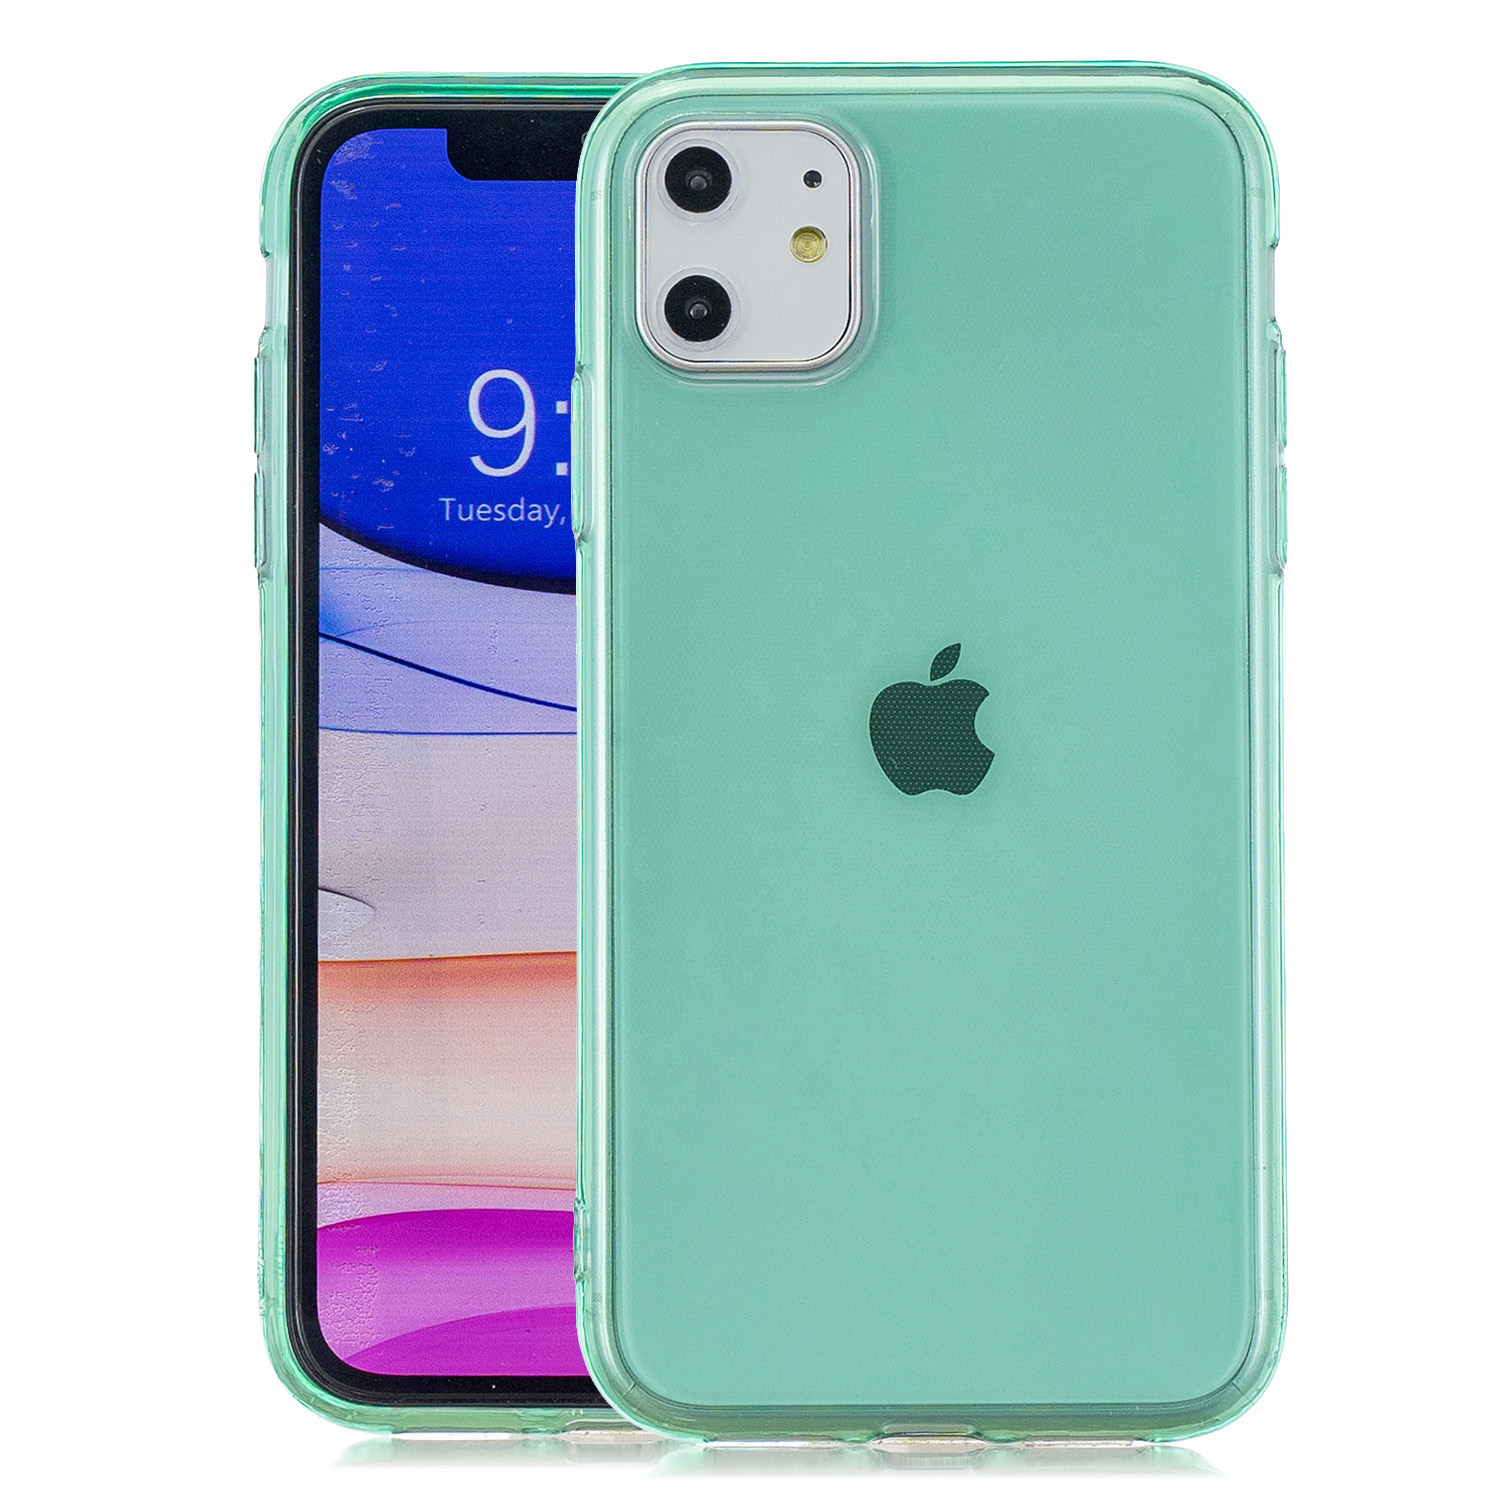 for iPhone 11 / 11 Pro / 11 Pro Max Clear Colorful TPU Back Cover Cellphone Case Shell Green